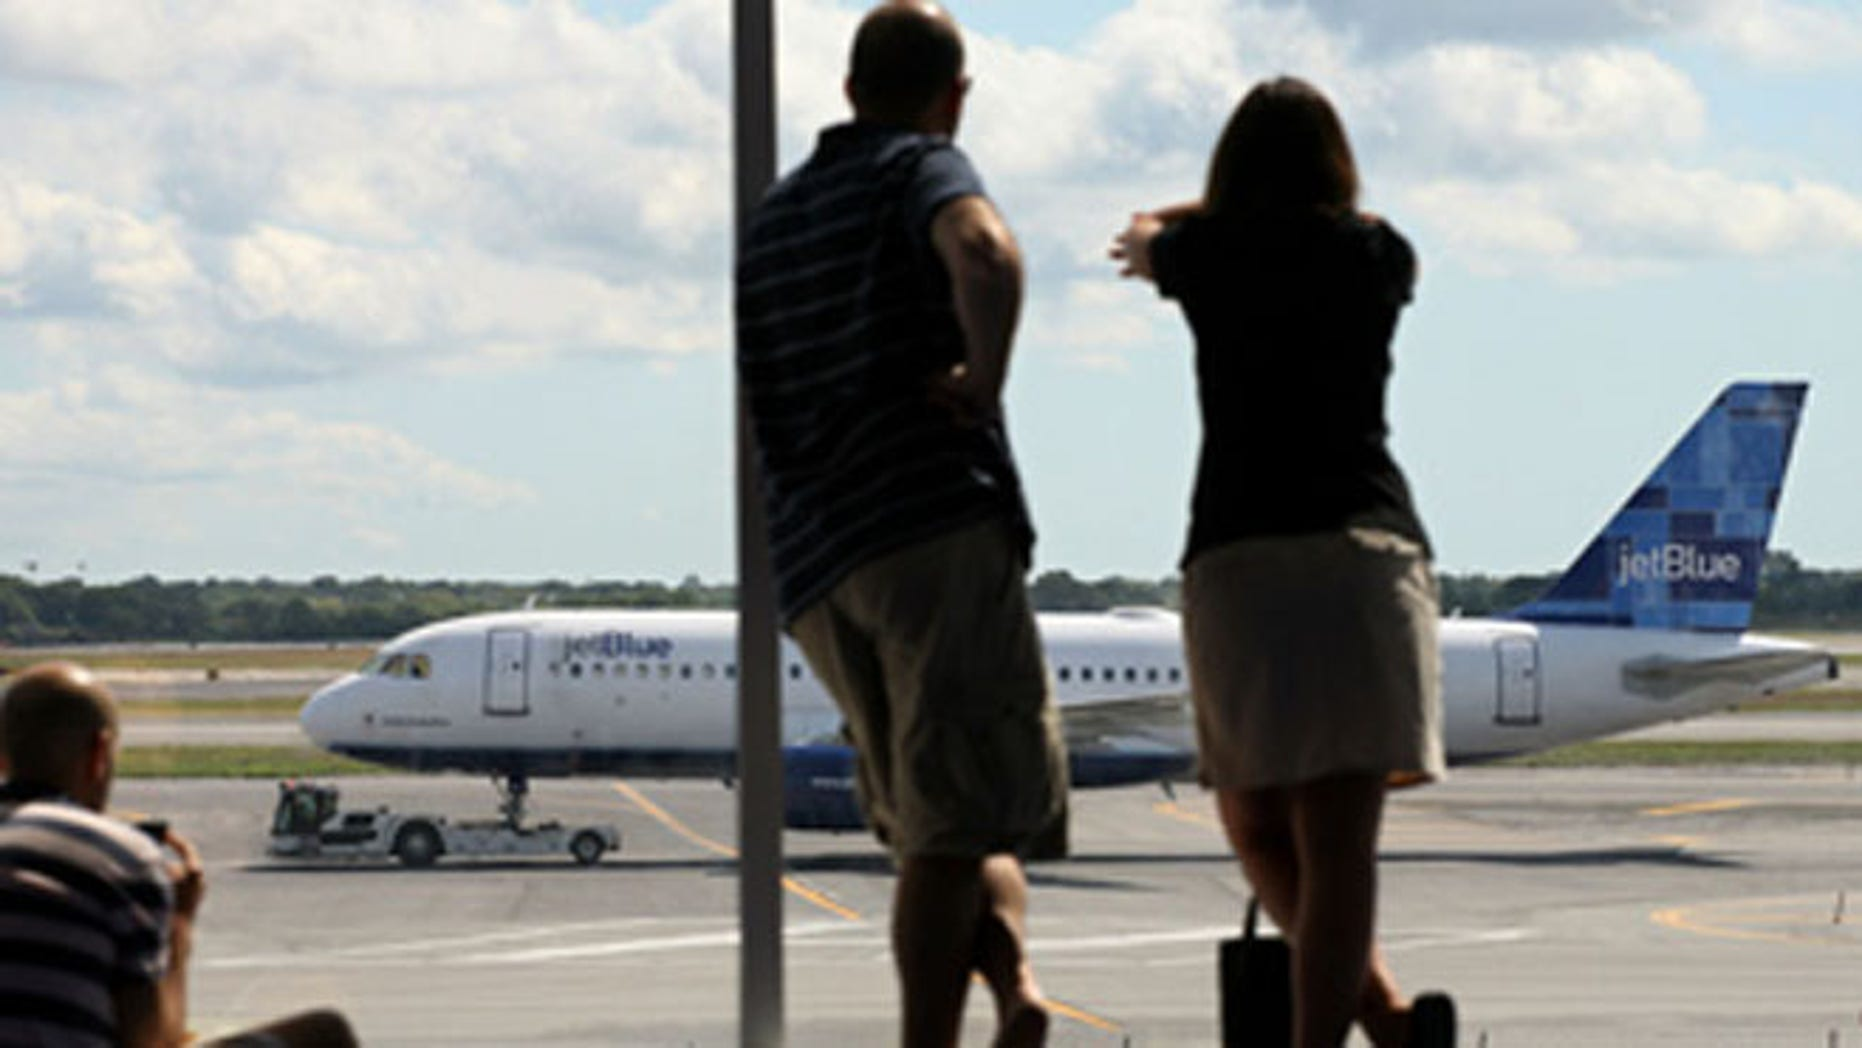 One in 10 travelers on long-haul flights develop symptomless deep-vein thrombosis.